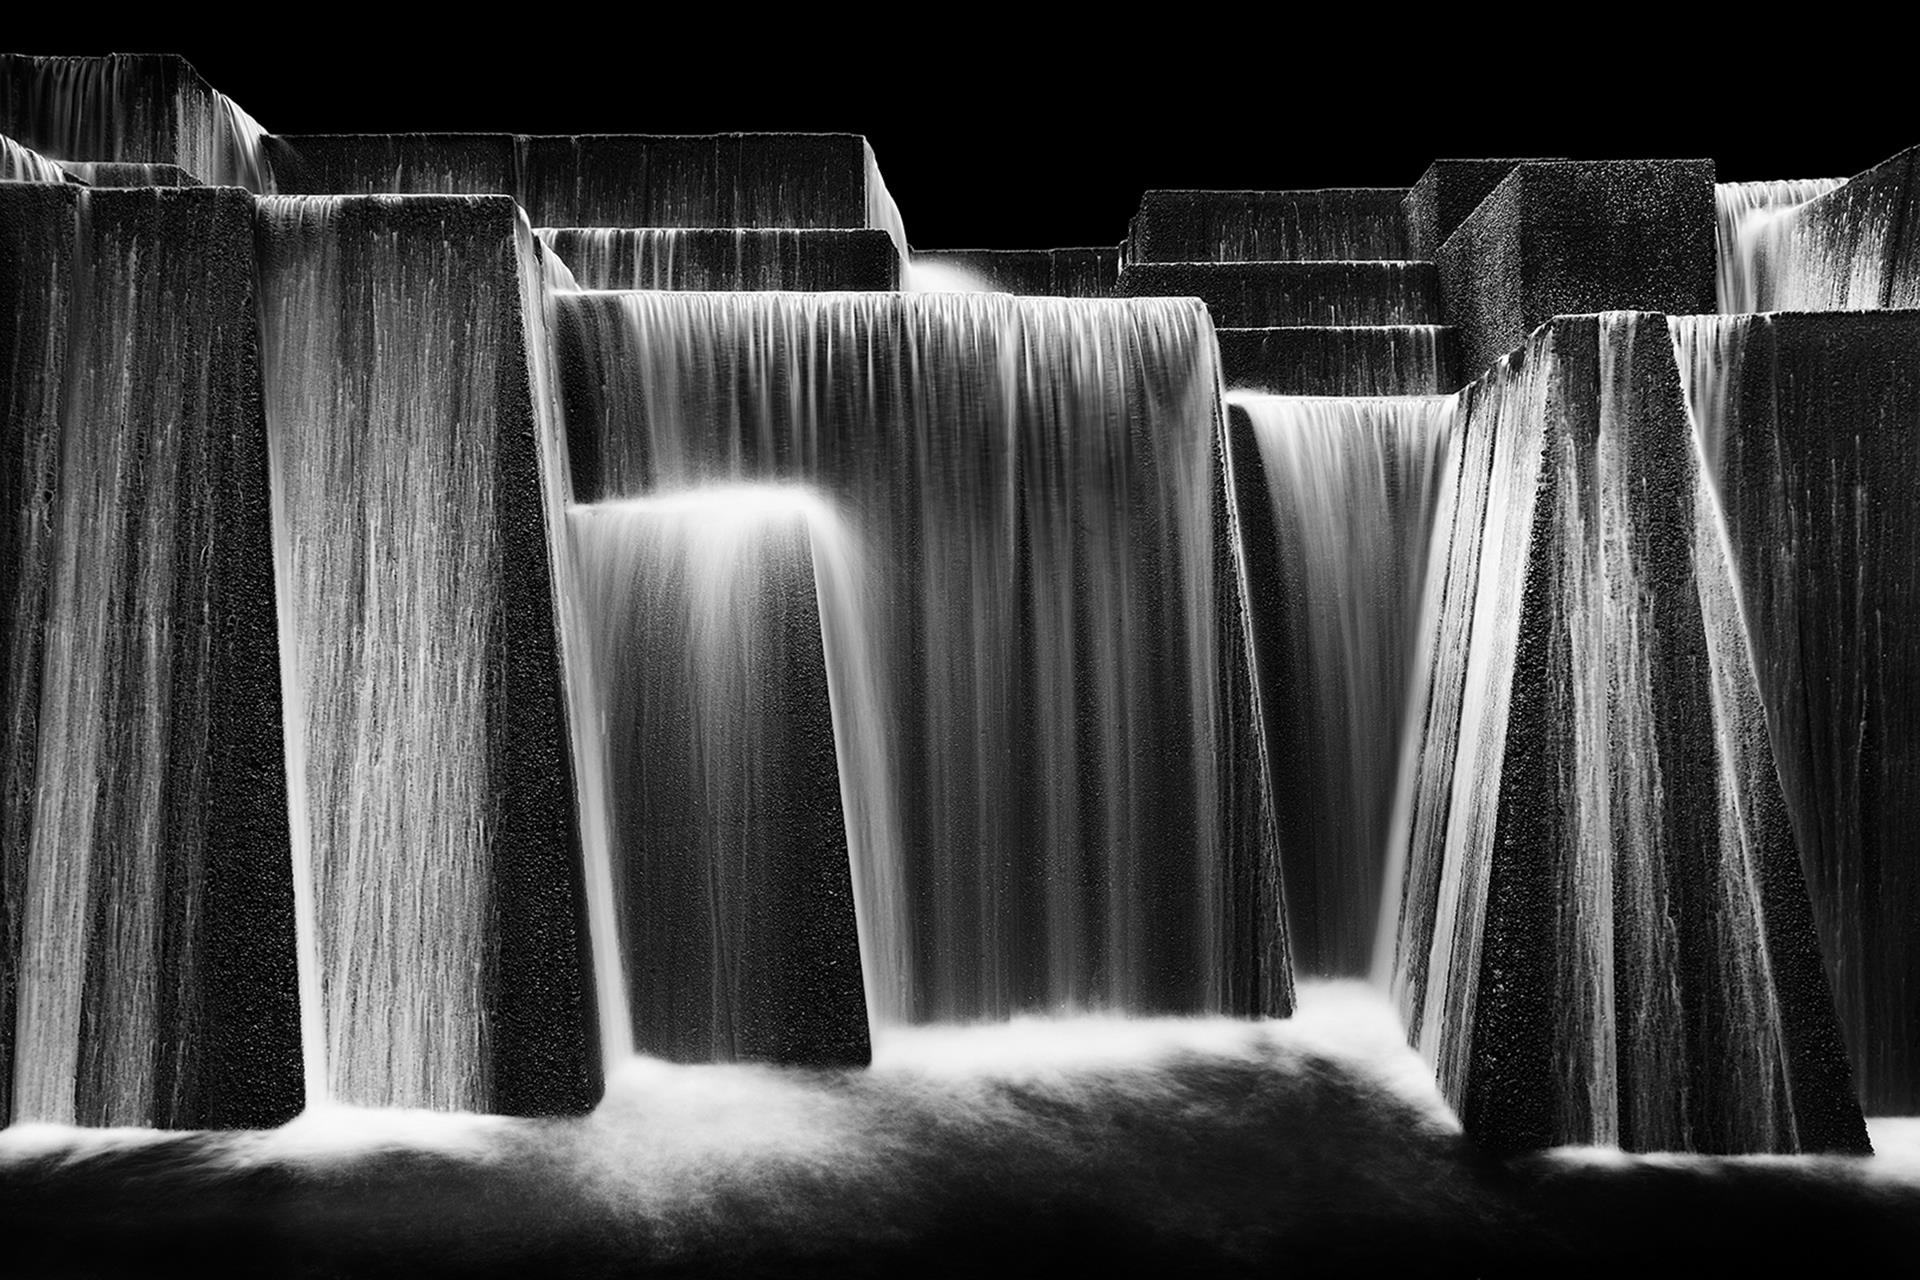 Scott Hoyle, Keller Fountain